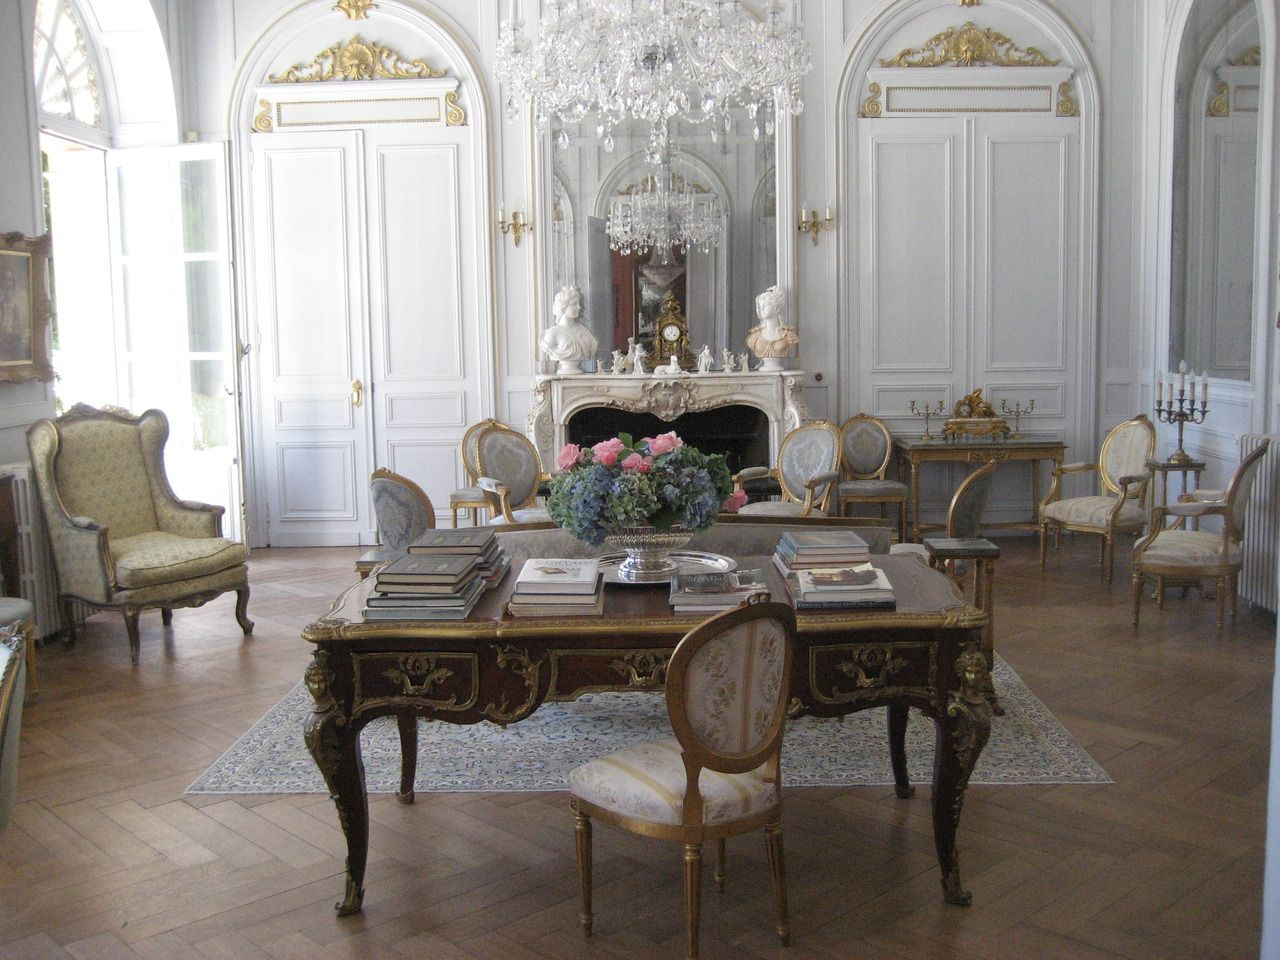 19th Century Chateau In The Dordogne Area Of France Interieur